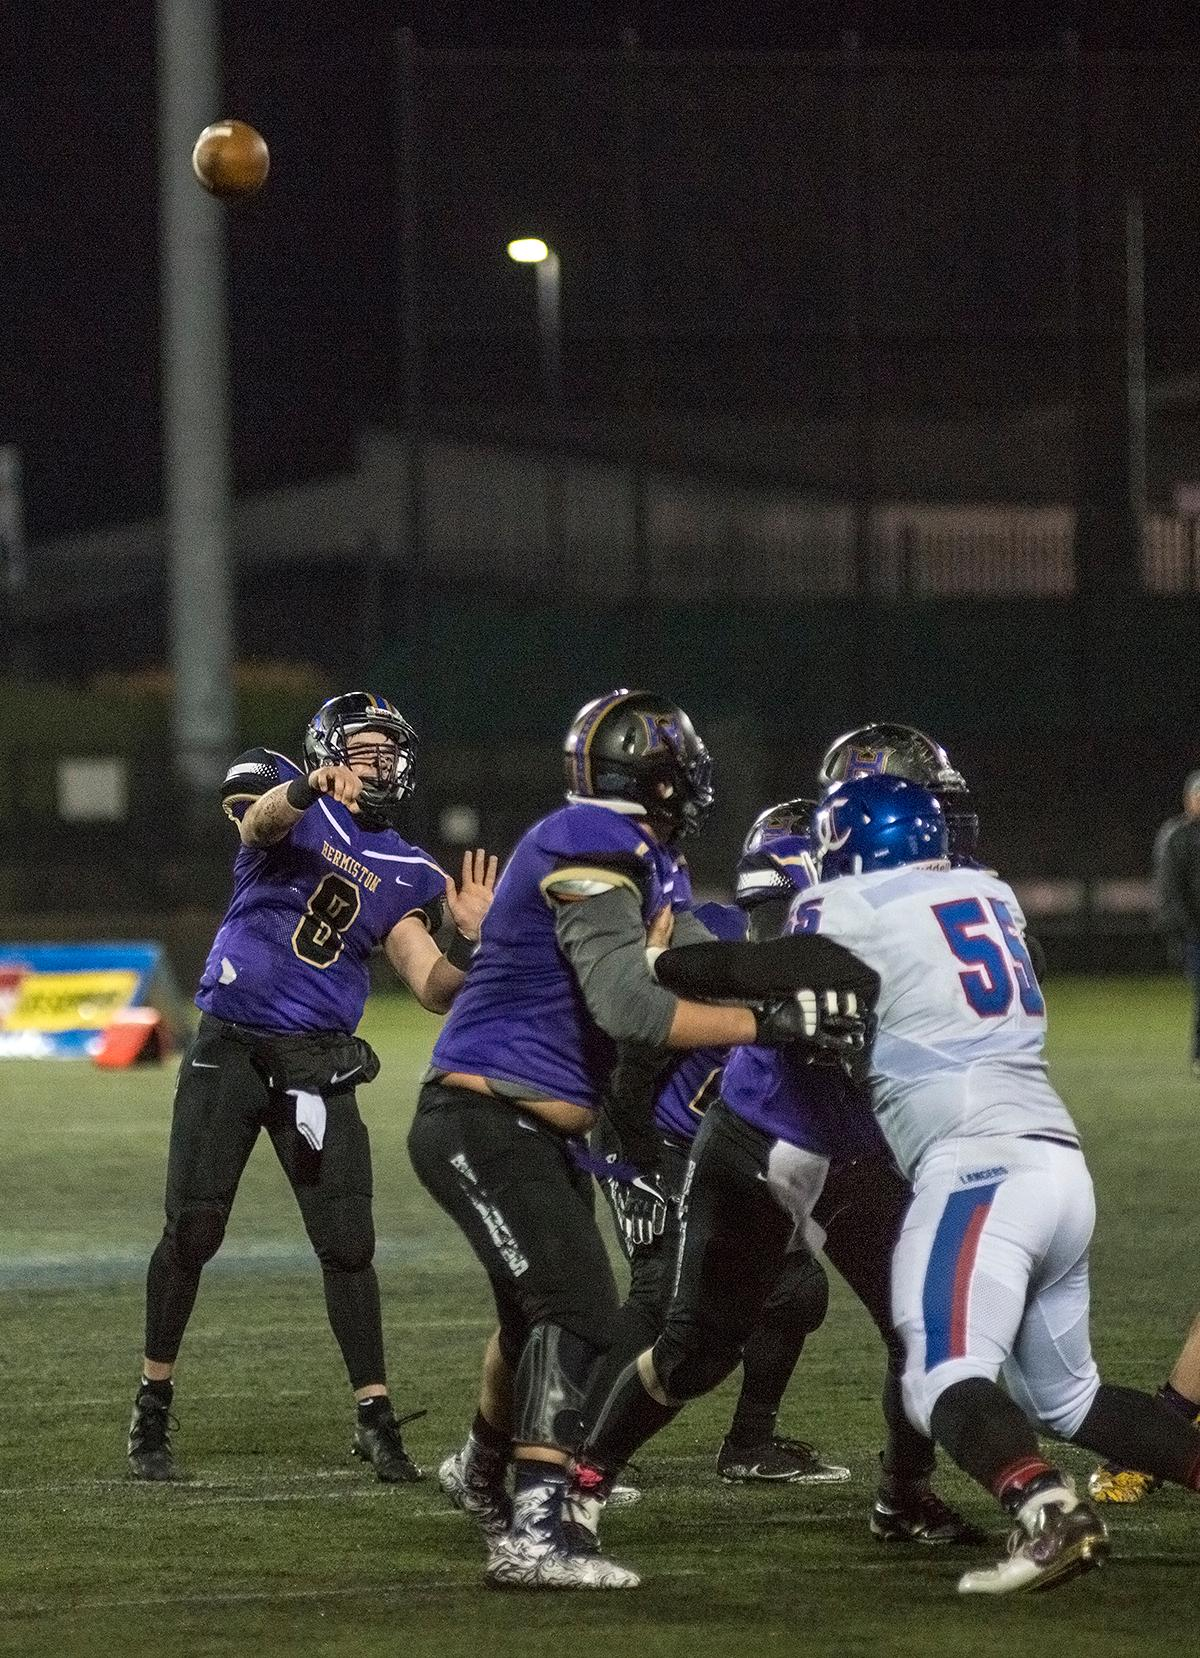 Hermiston Bulldogs quarterback Andrew James (#8) throws deep downfield.The Hermiston Bulldogs defeated the Churchill Lancers 38-35 for the 5A state title Saturday evening at Hillsboro Stadium. Photo by Abigail Winn, Oregon News Lab